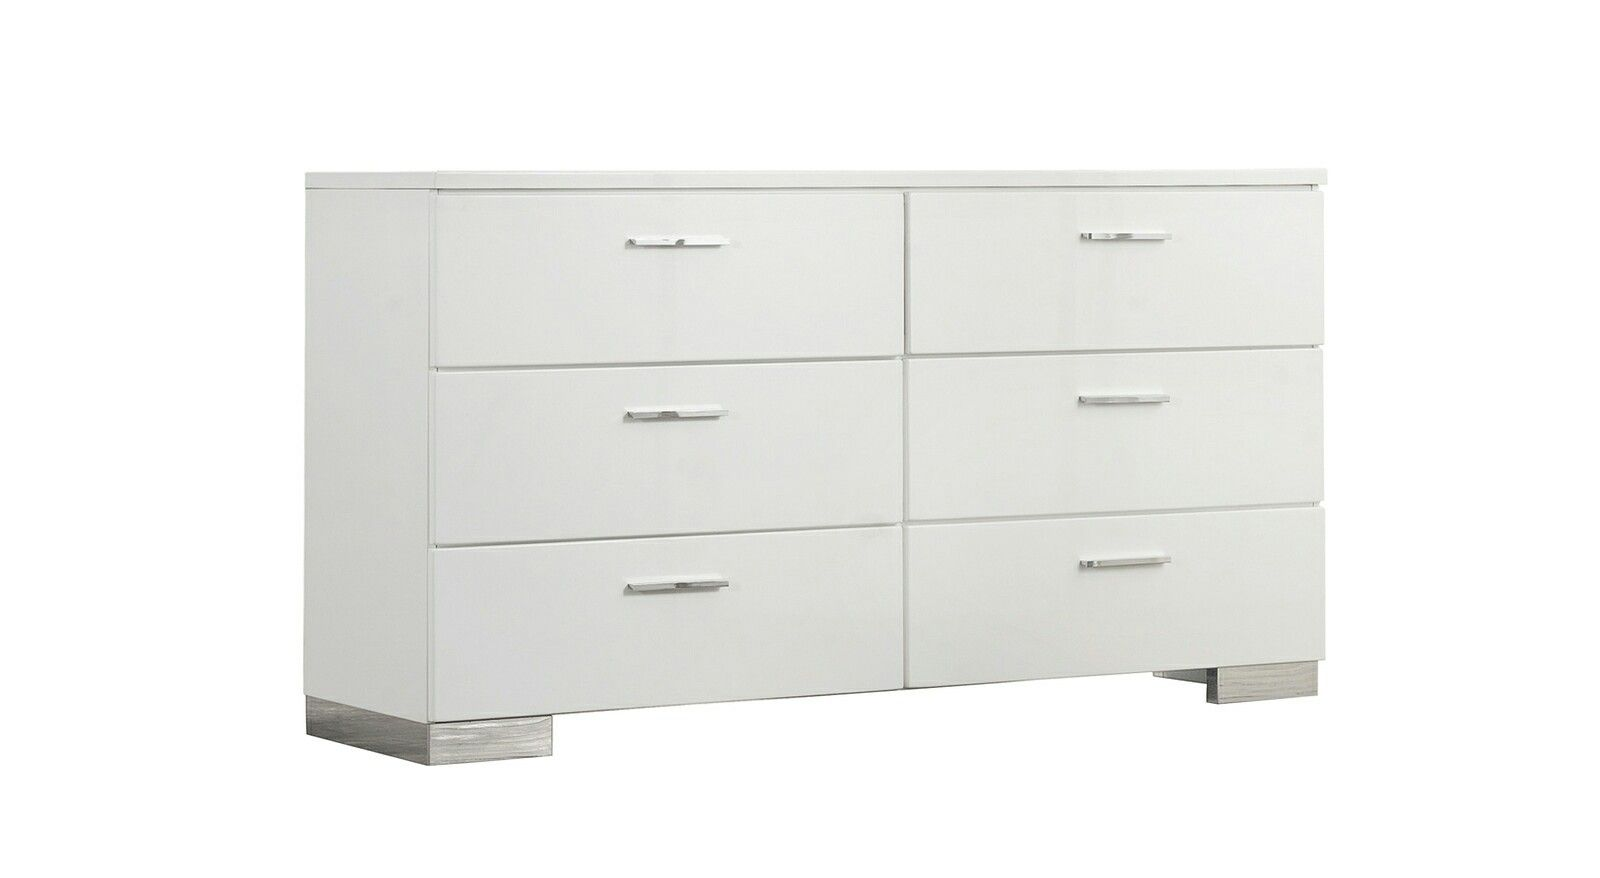 One In Stock Phoebe Glossy Dresser 63 X17 75 X35 25 H Rent 79 Buy 569 Dresser Metal Bar Glossy White